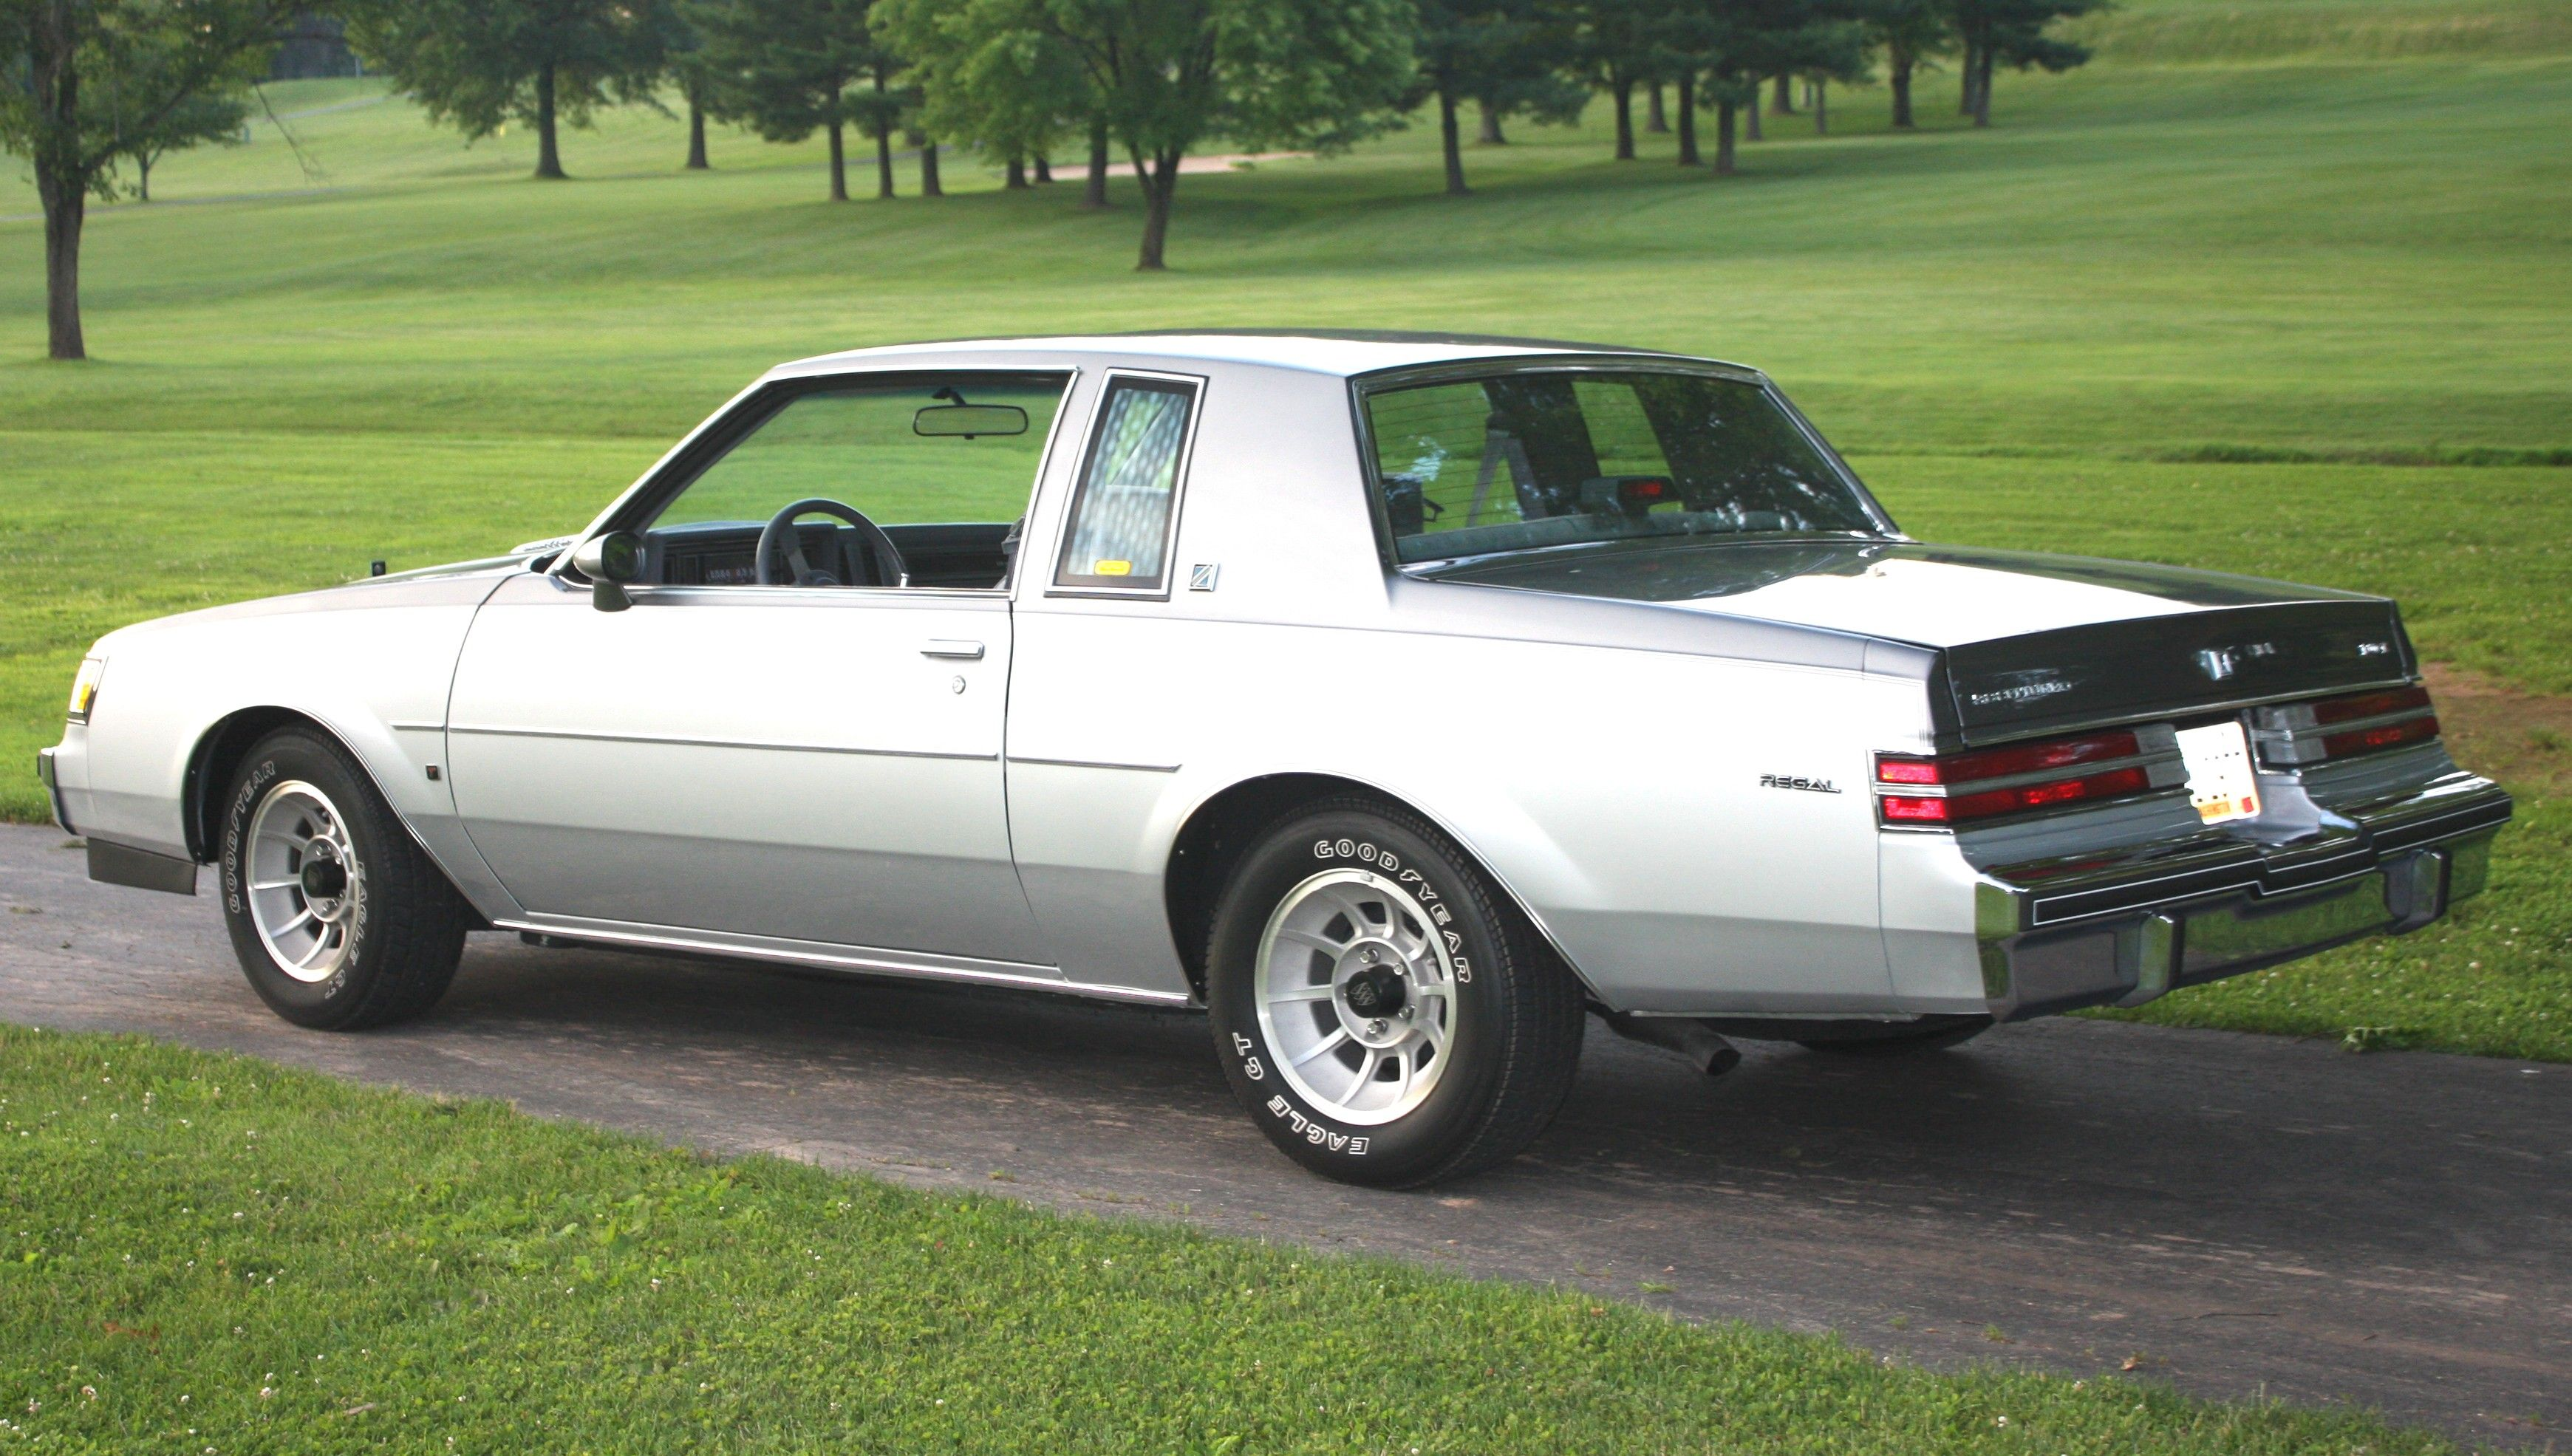 gallery xstasy photo grand july national buick gnx htm rearpax replica